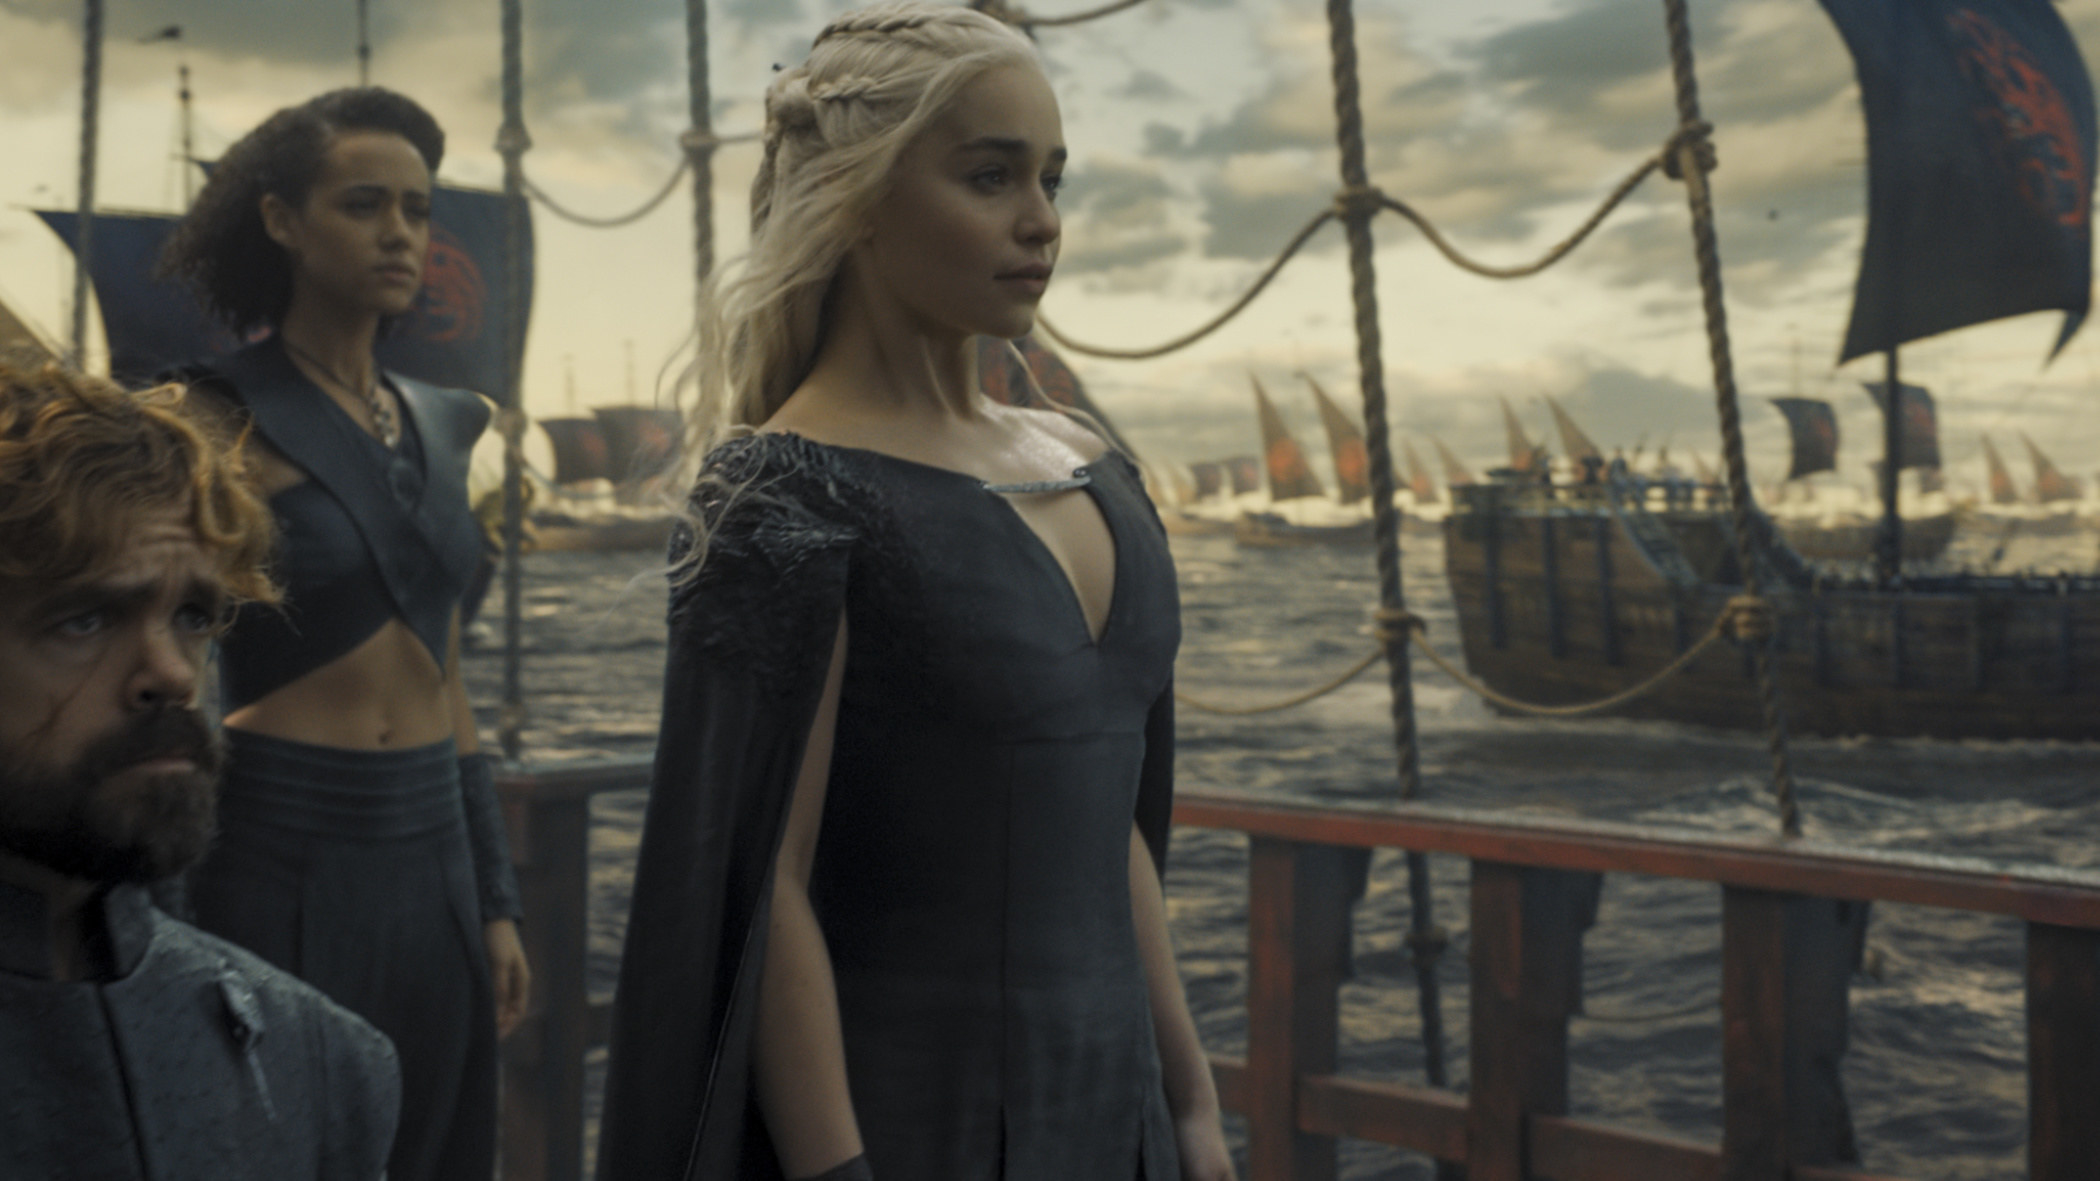 Still from Game Of Thrones: Daenerys looking out into the ocean along with Tyrion and Missandei